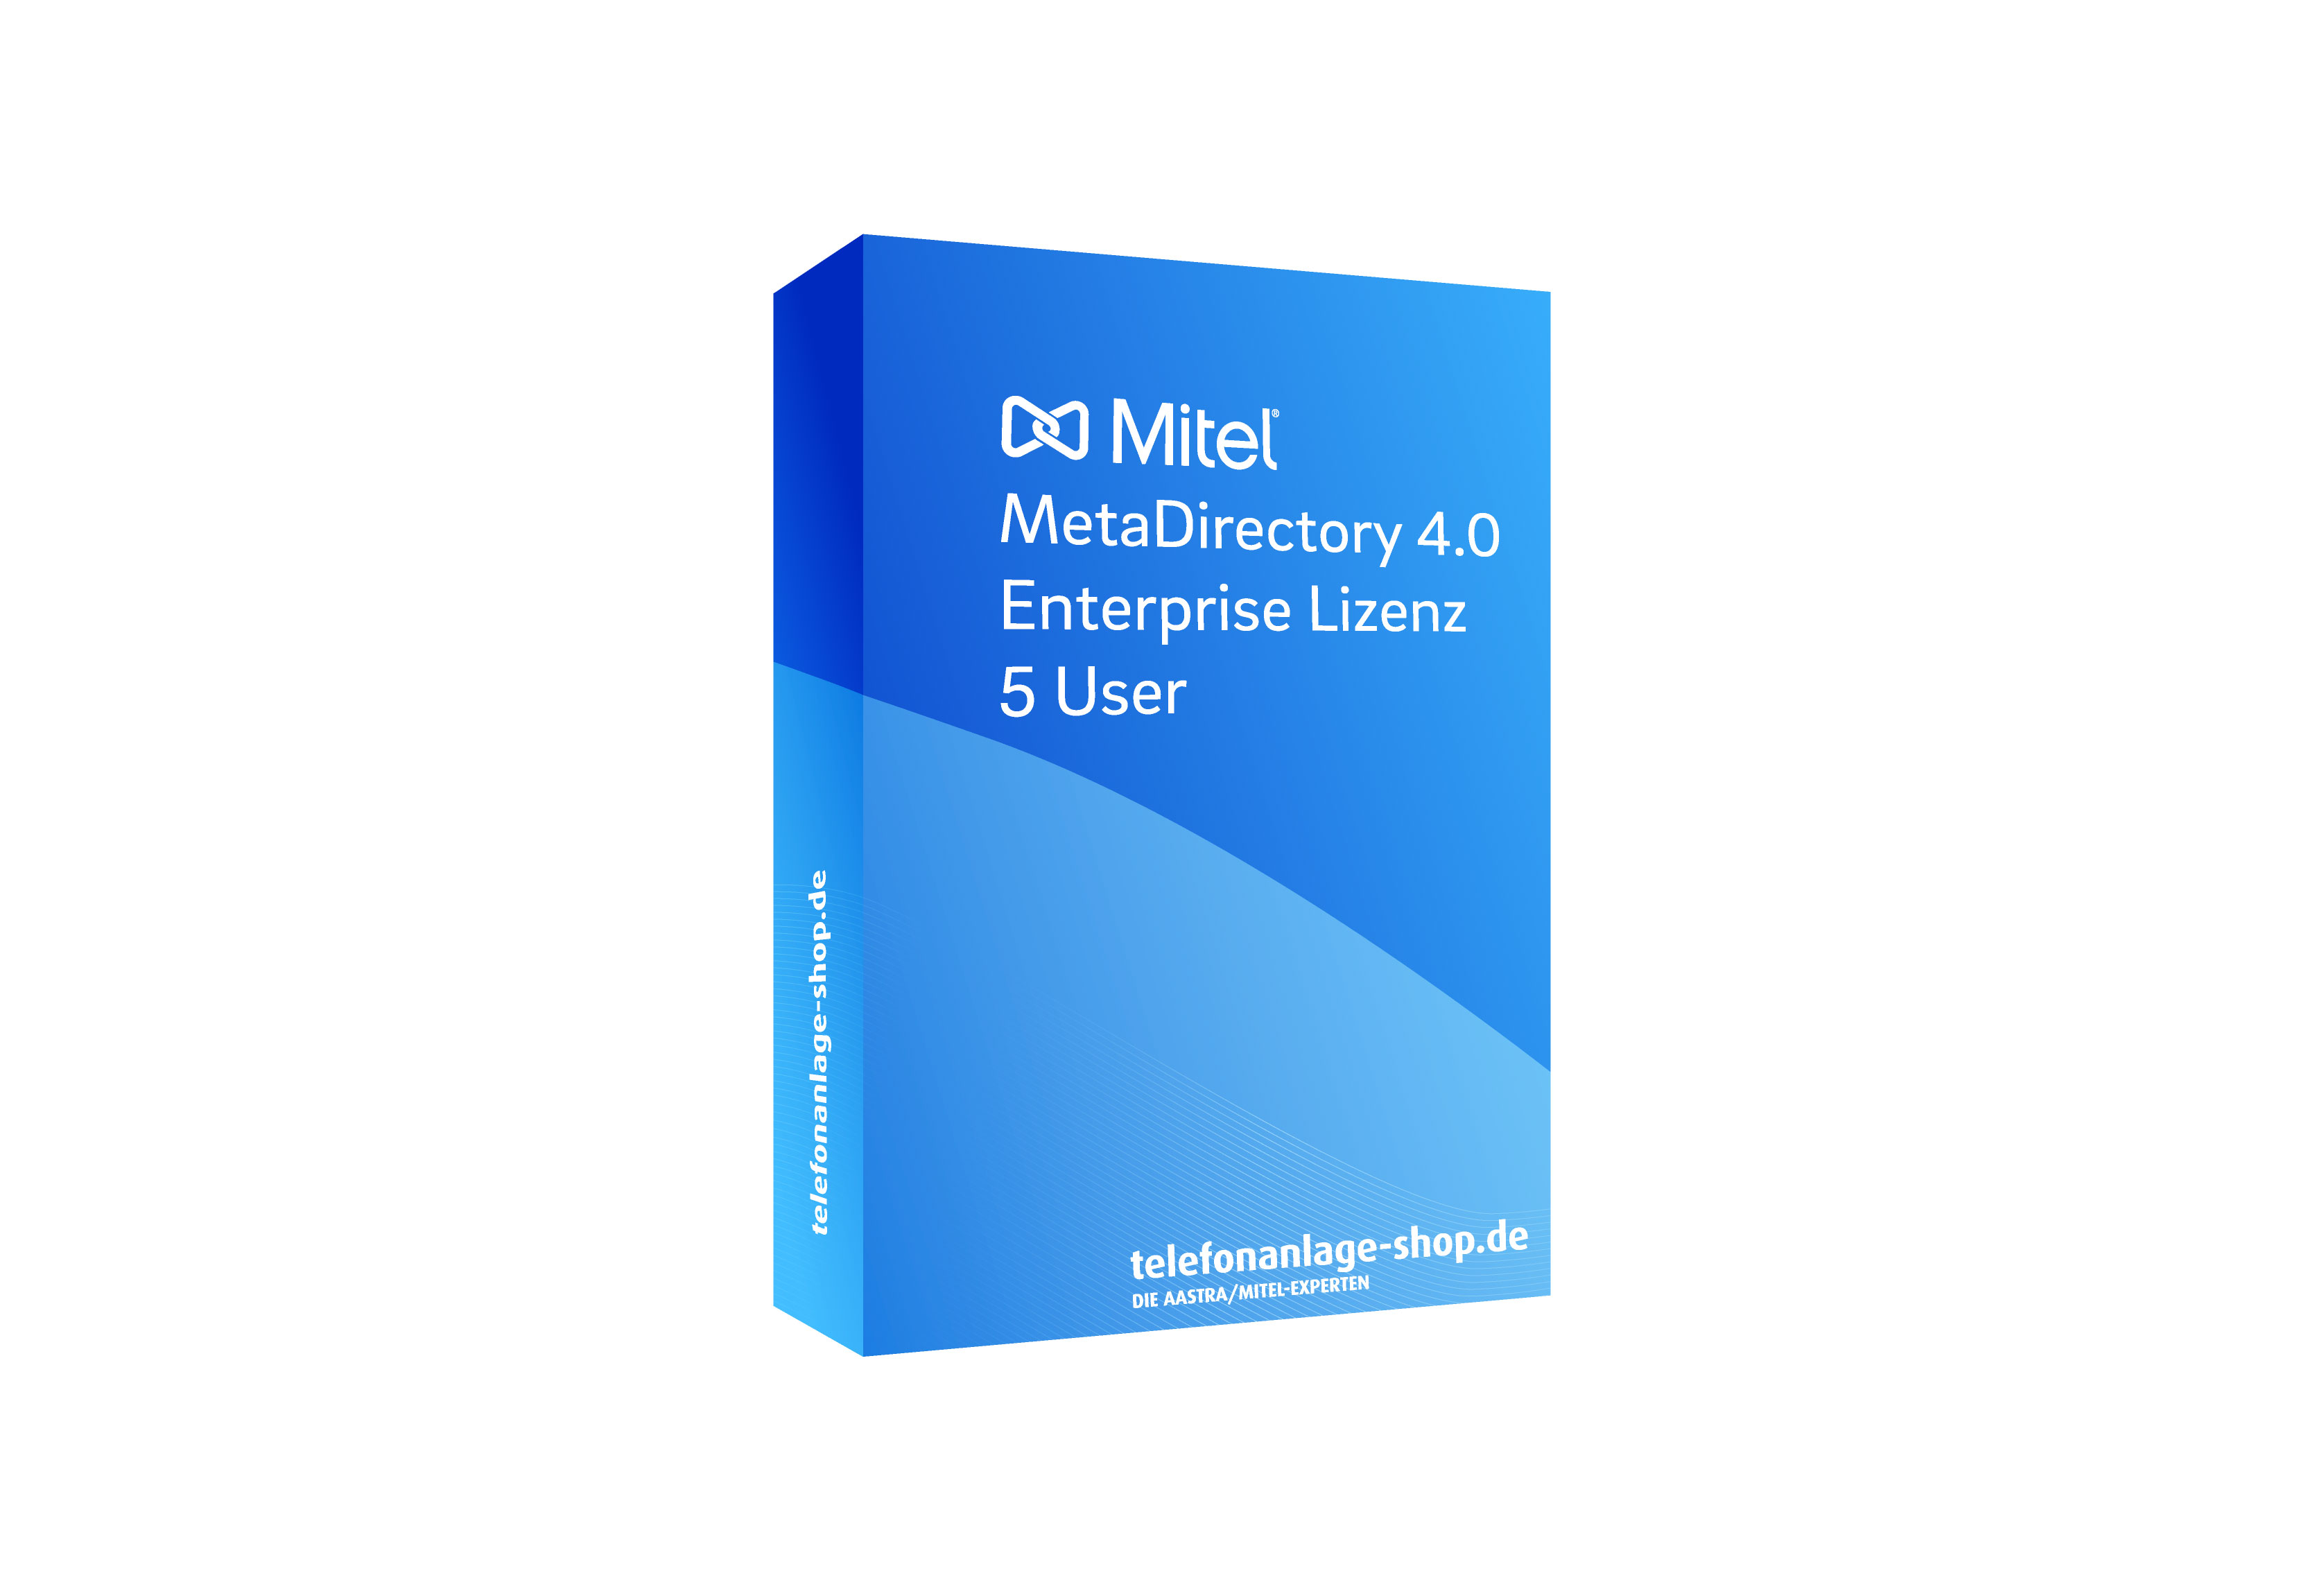 Produktbild - Mitel MetaDirectory 4.0 Enterprise Lizenz 5 User